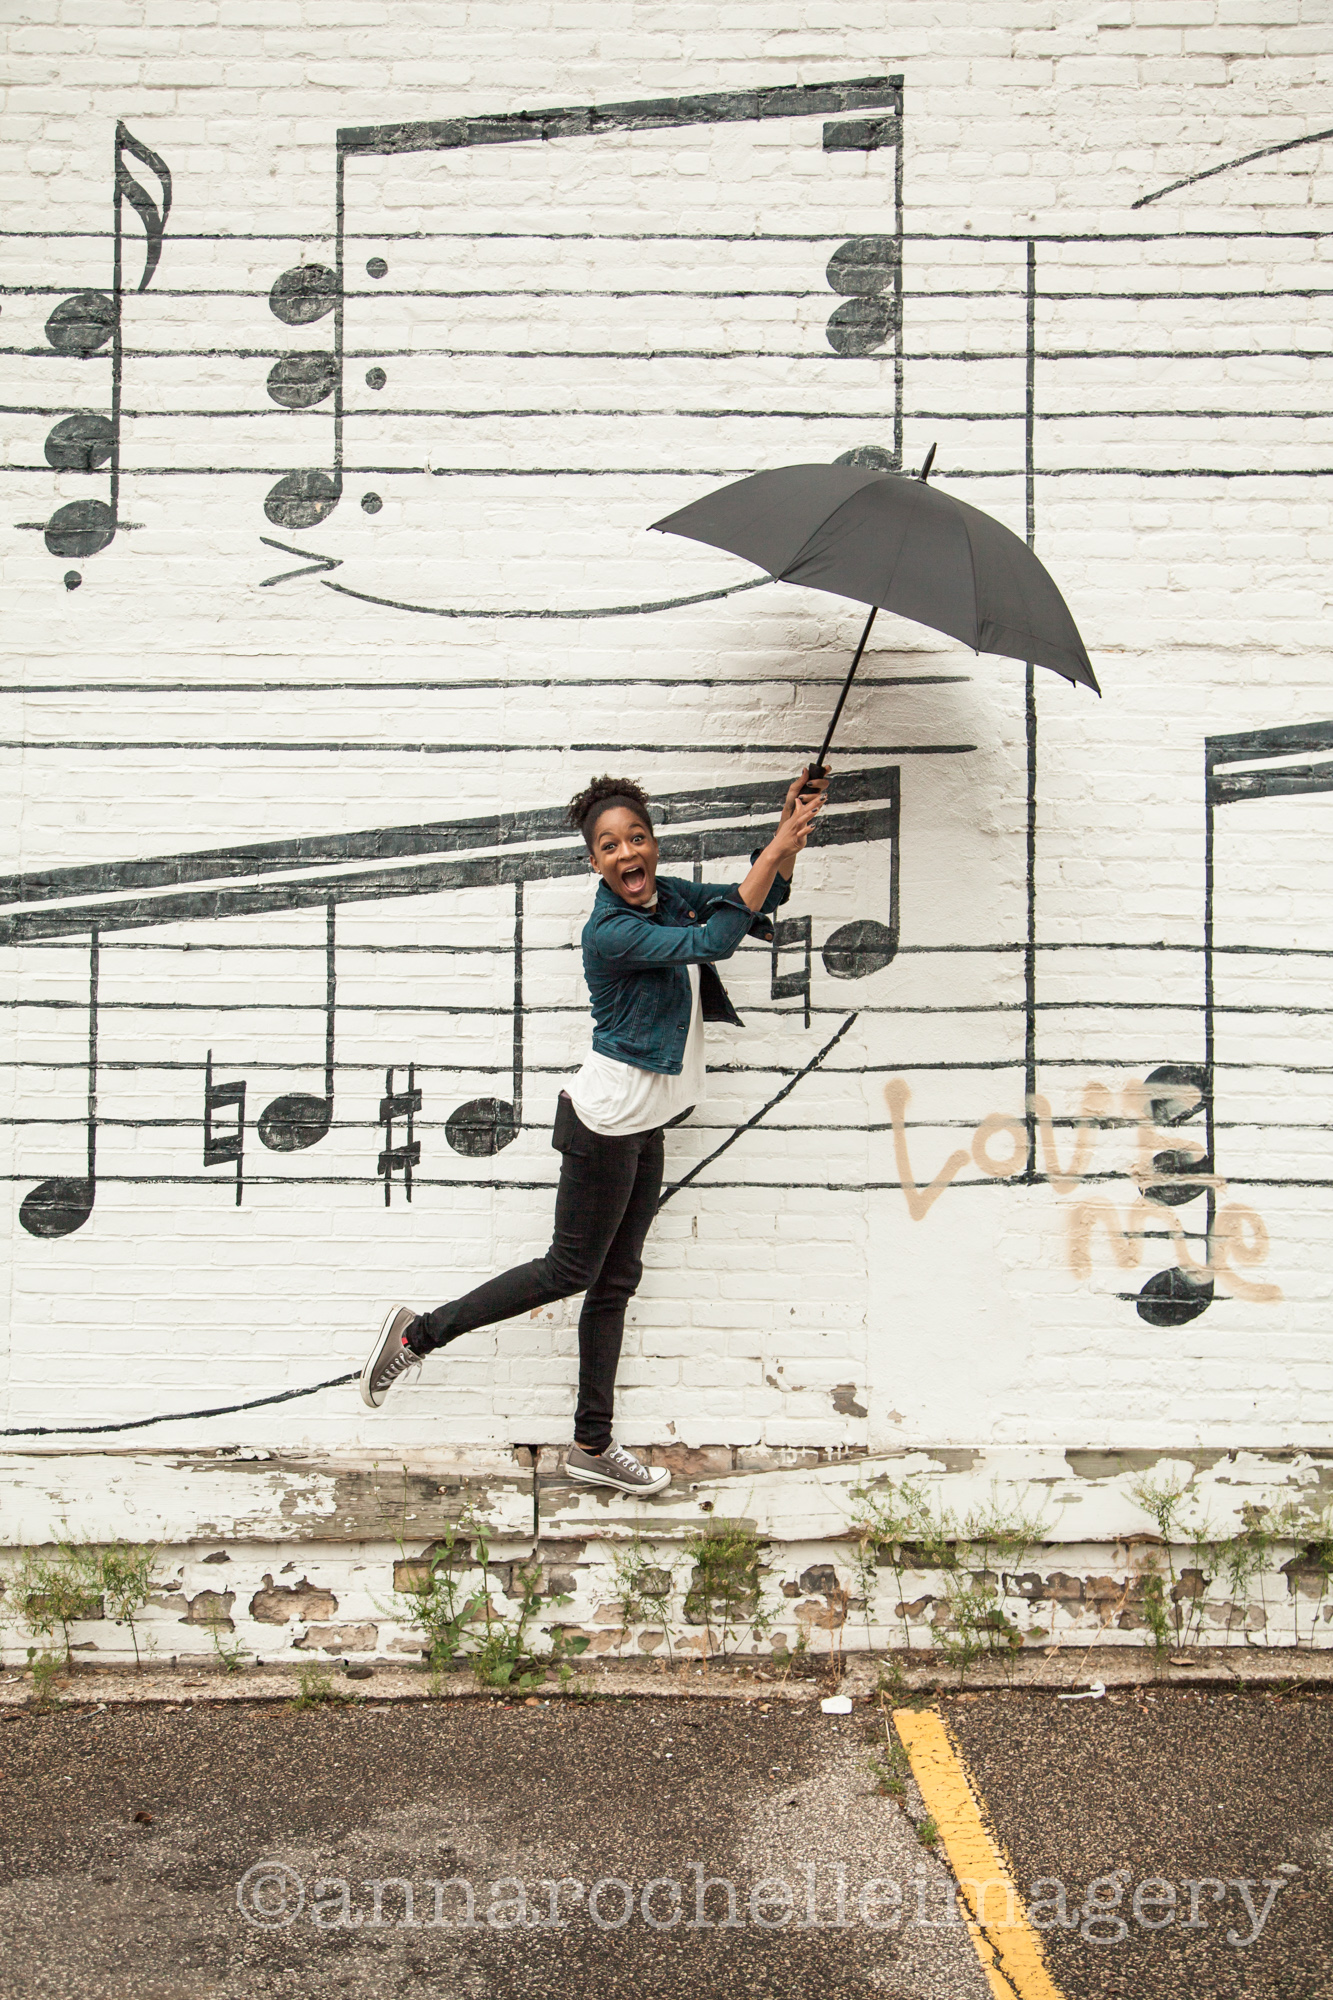 Minnesota-music-mural-portraits-prince-rainyday-seniors-creatives-anna rochelle imagery-6.jpg